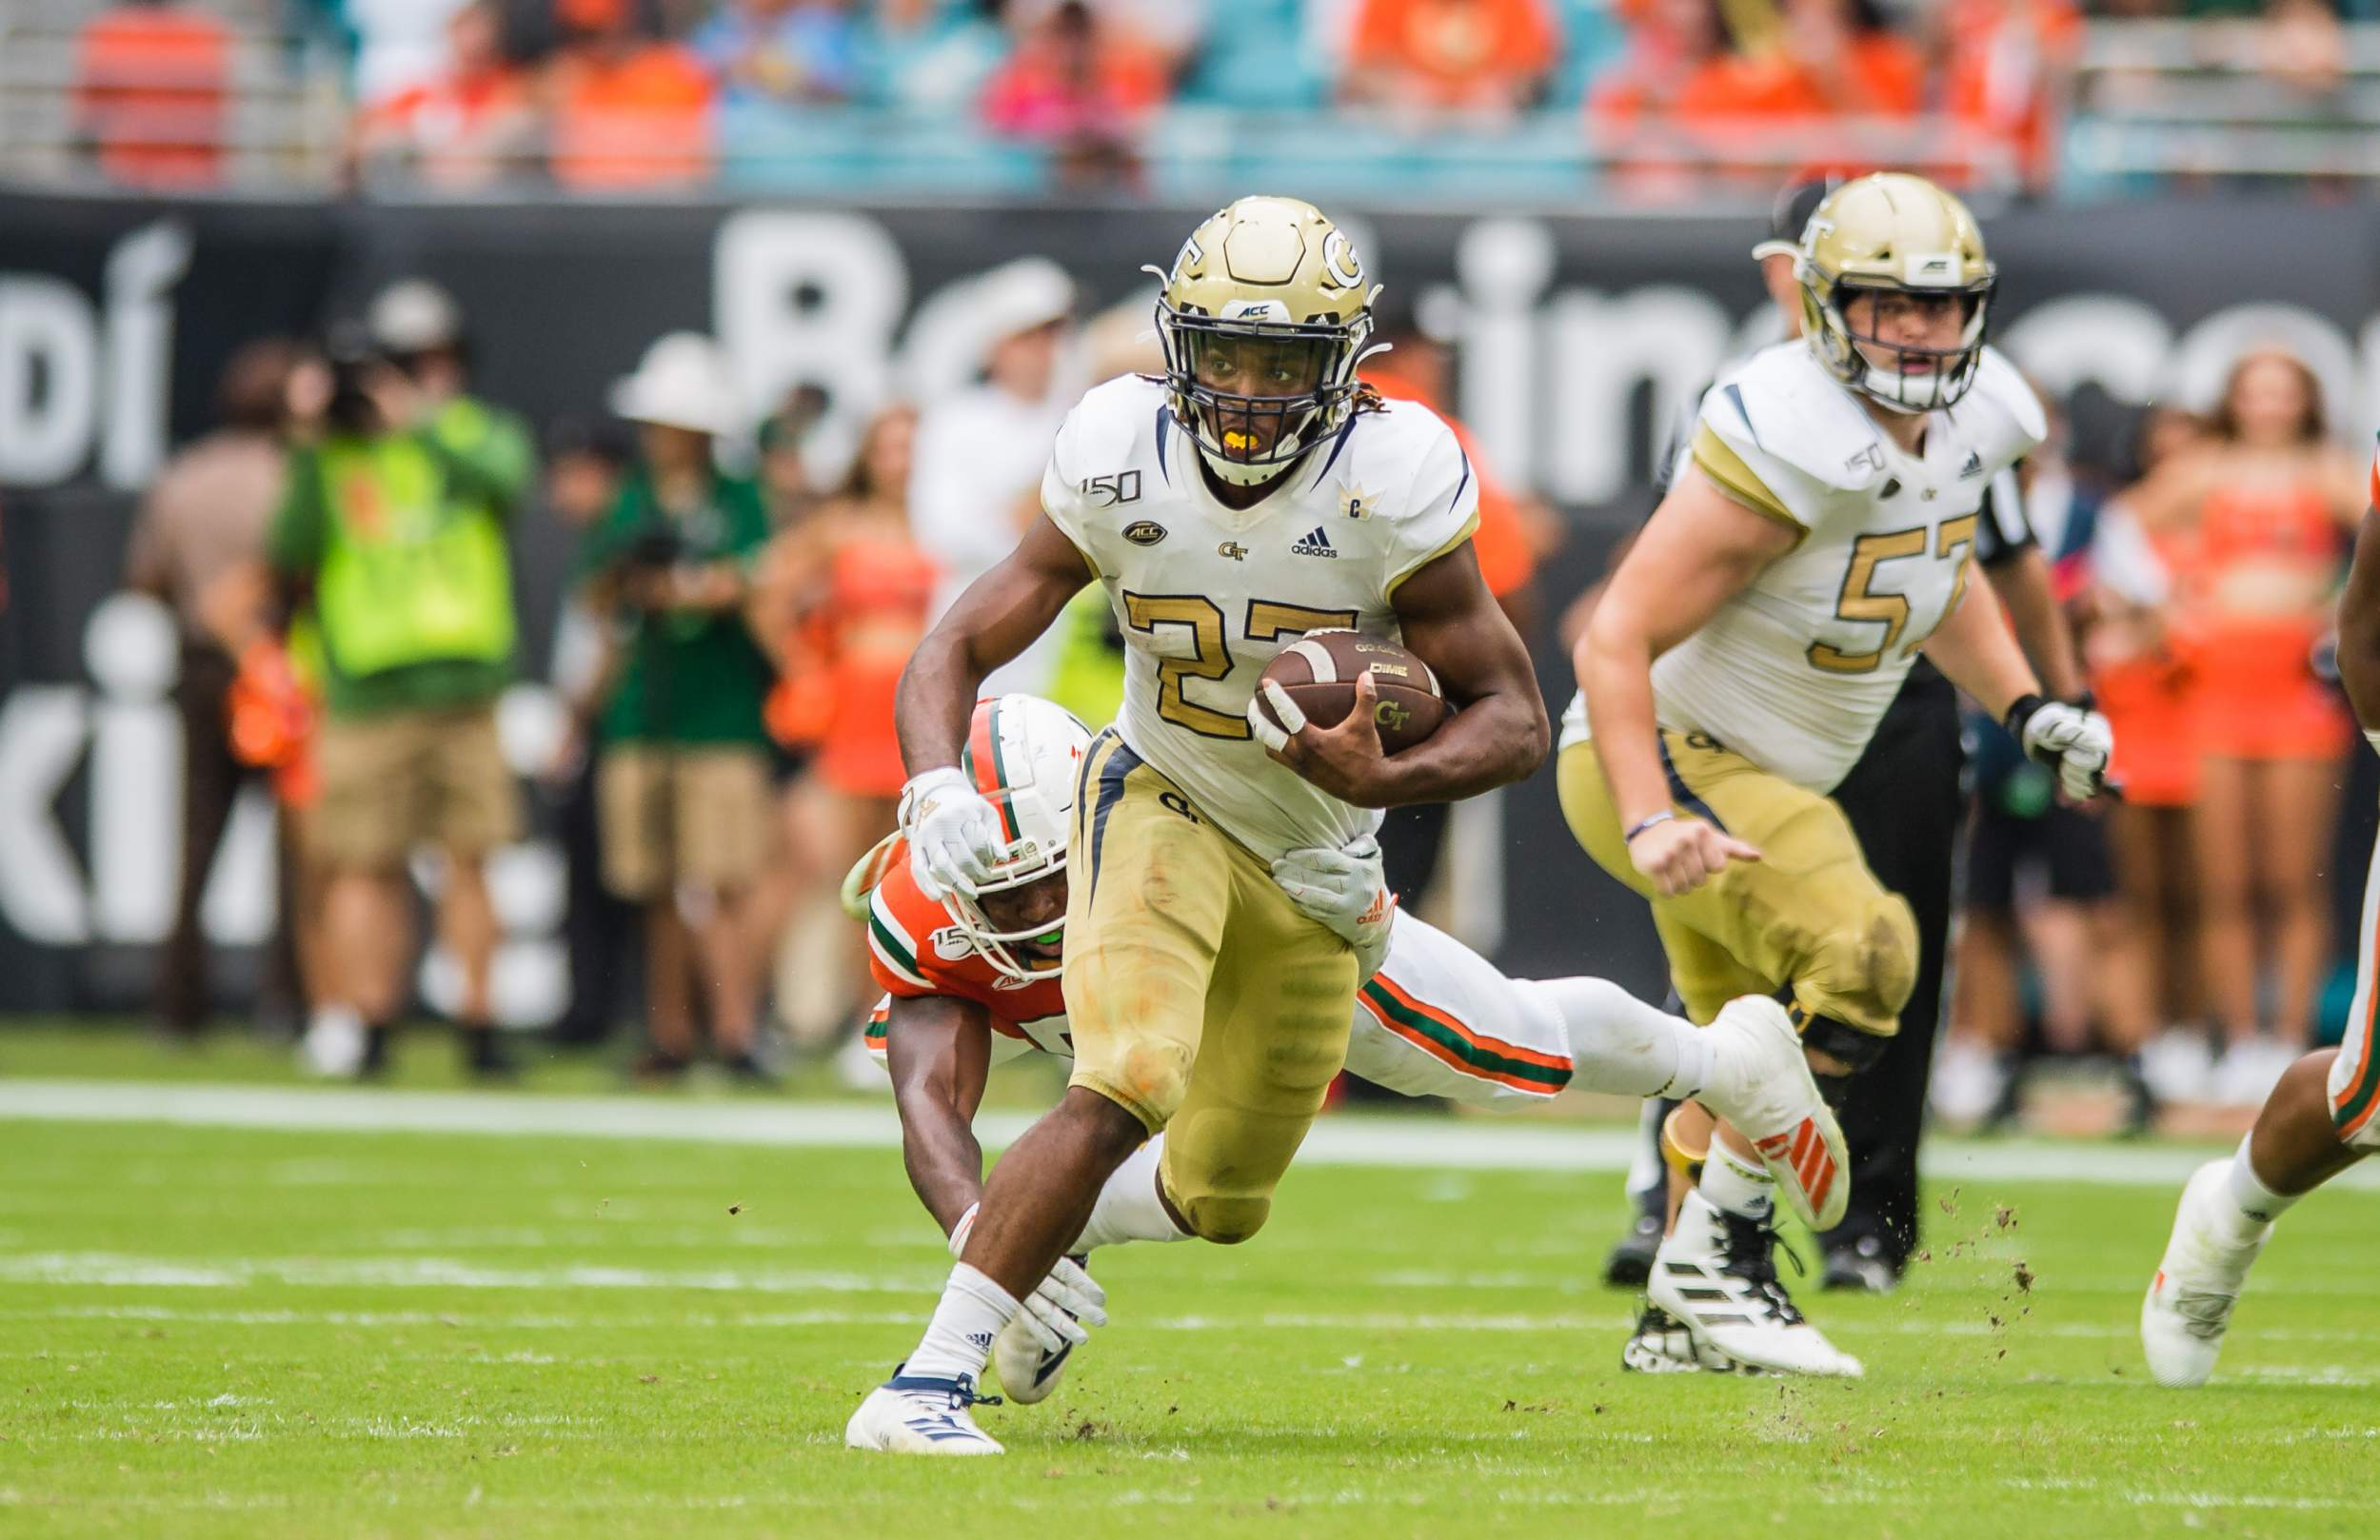 Photo: Jordan Mason (27), Georgia Tech Athletics